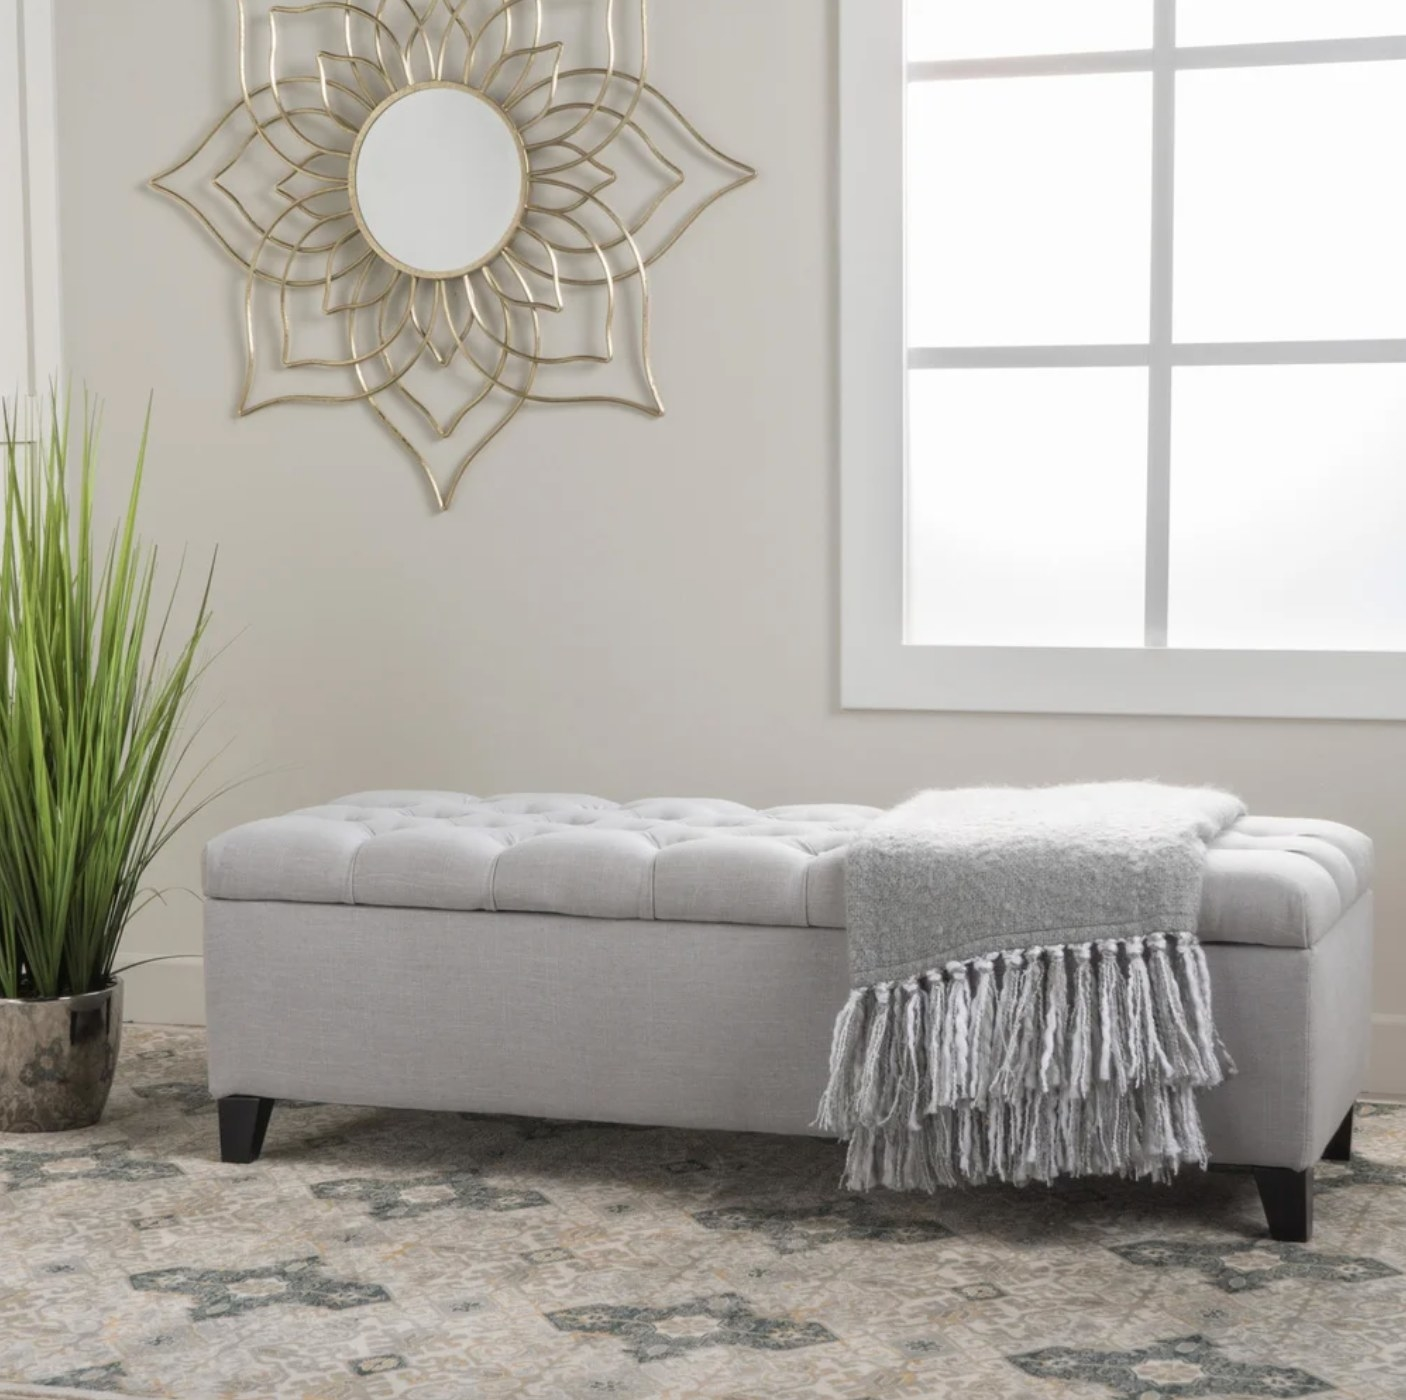 The ottoman bench in light gray